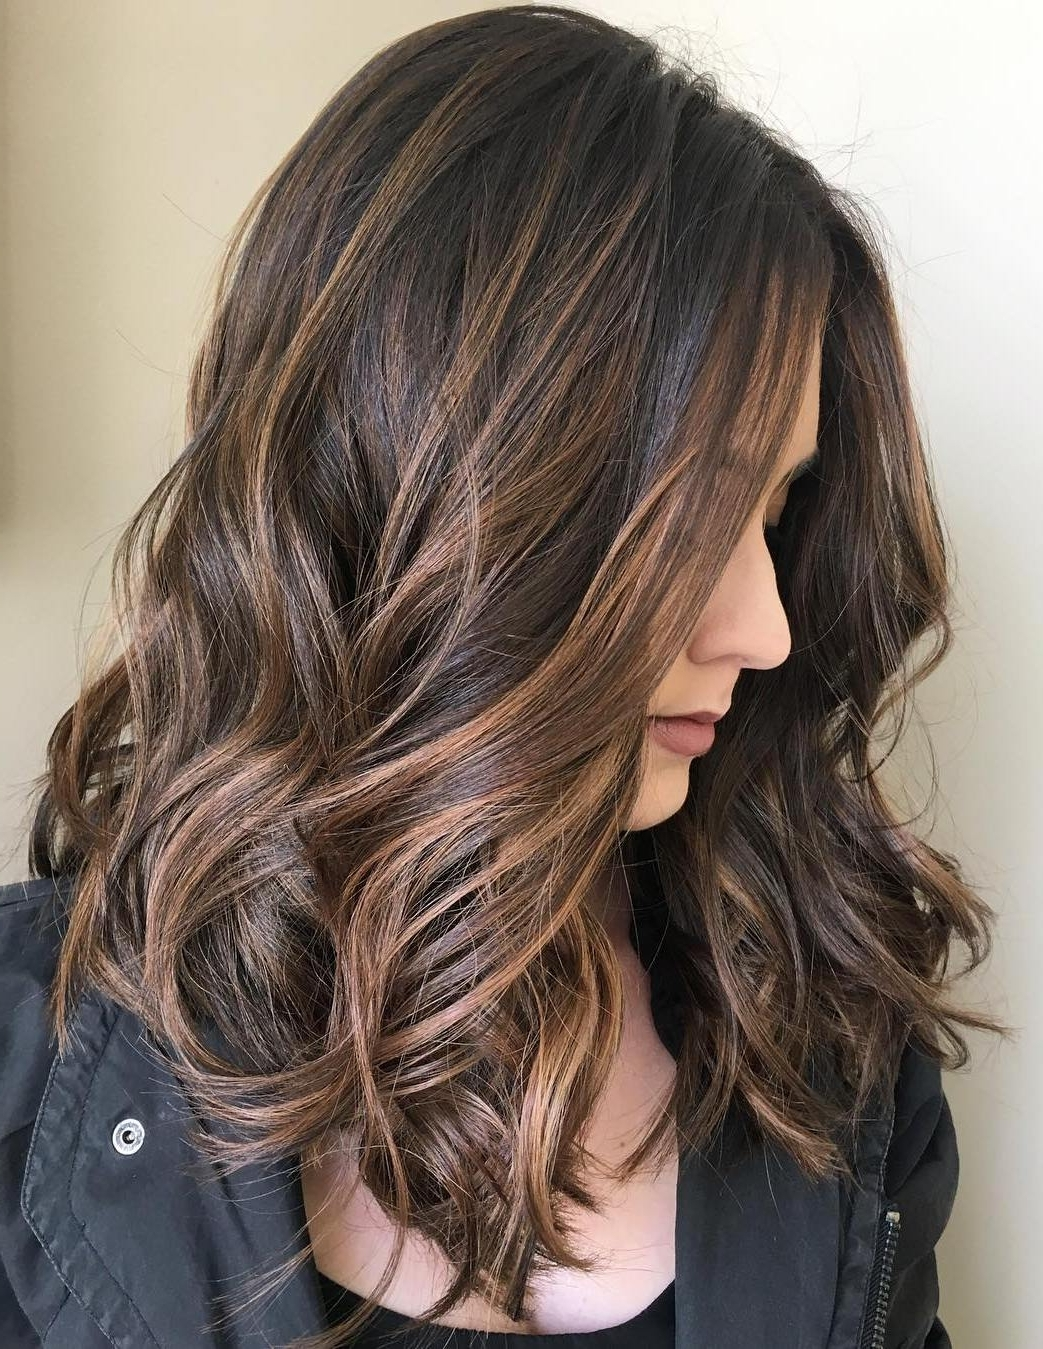 Current Piece Y Pixie Haircuts With Subtle Balayage Regarding 70 Balayage Hair Color Ideas With Blonde, Brown And Caramel Highlights (View 9 of 20)